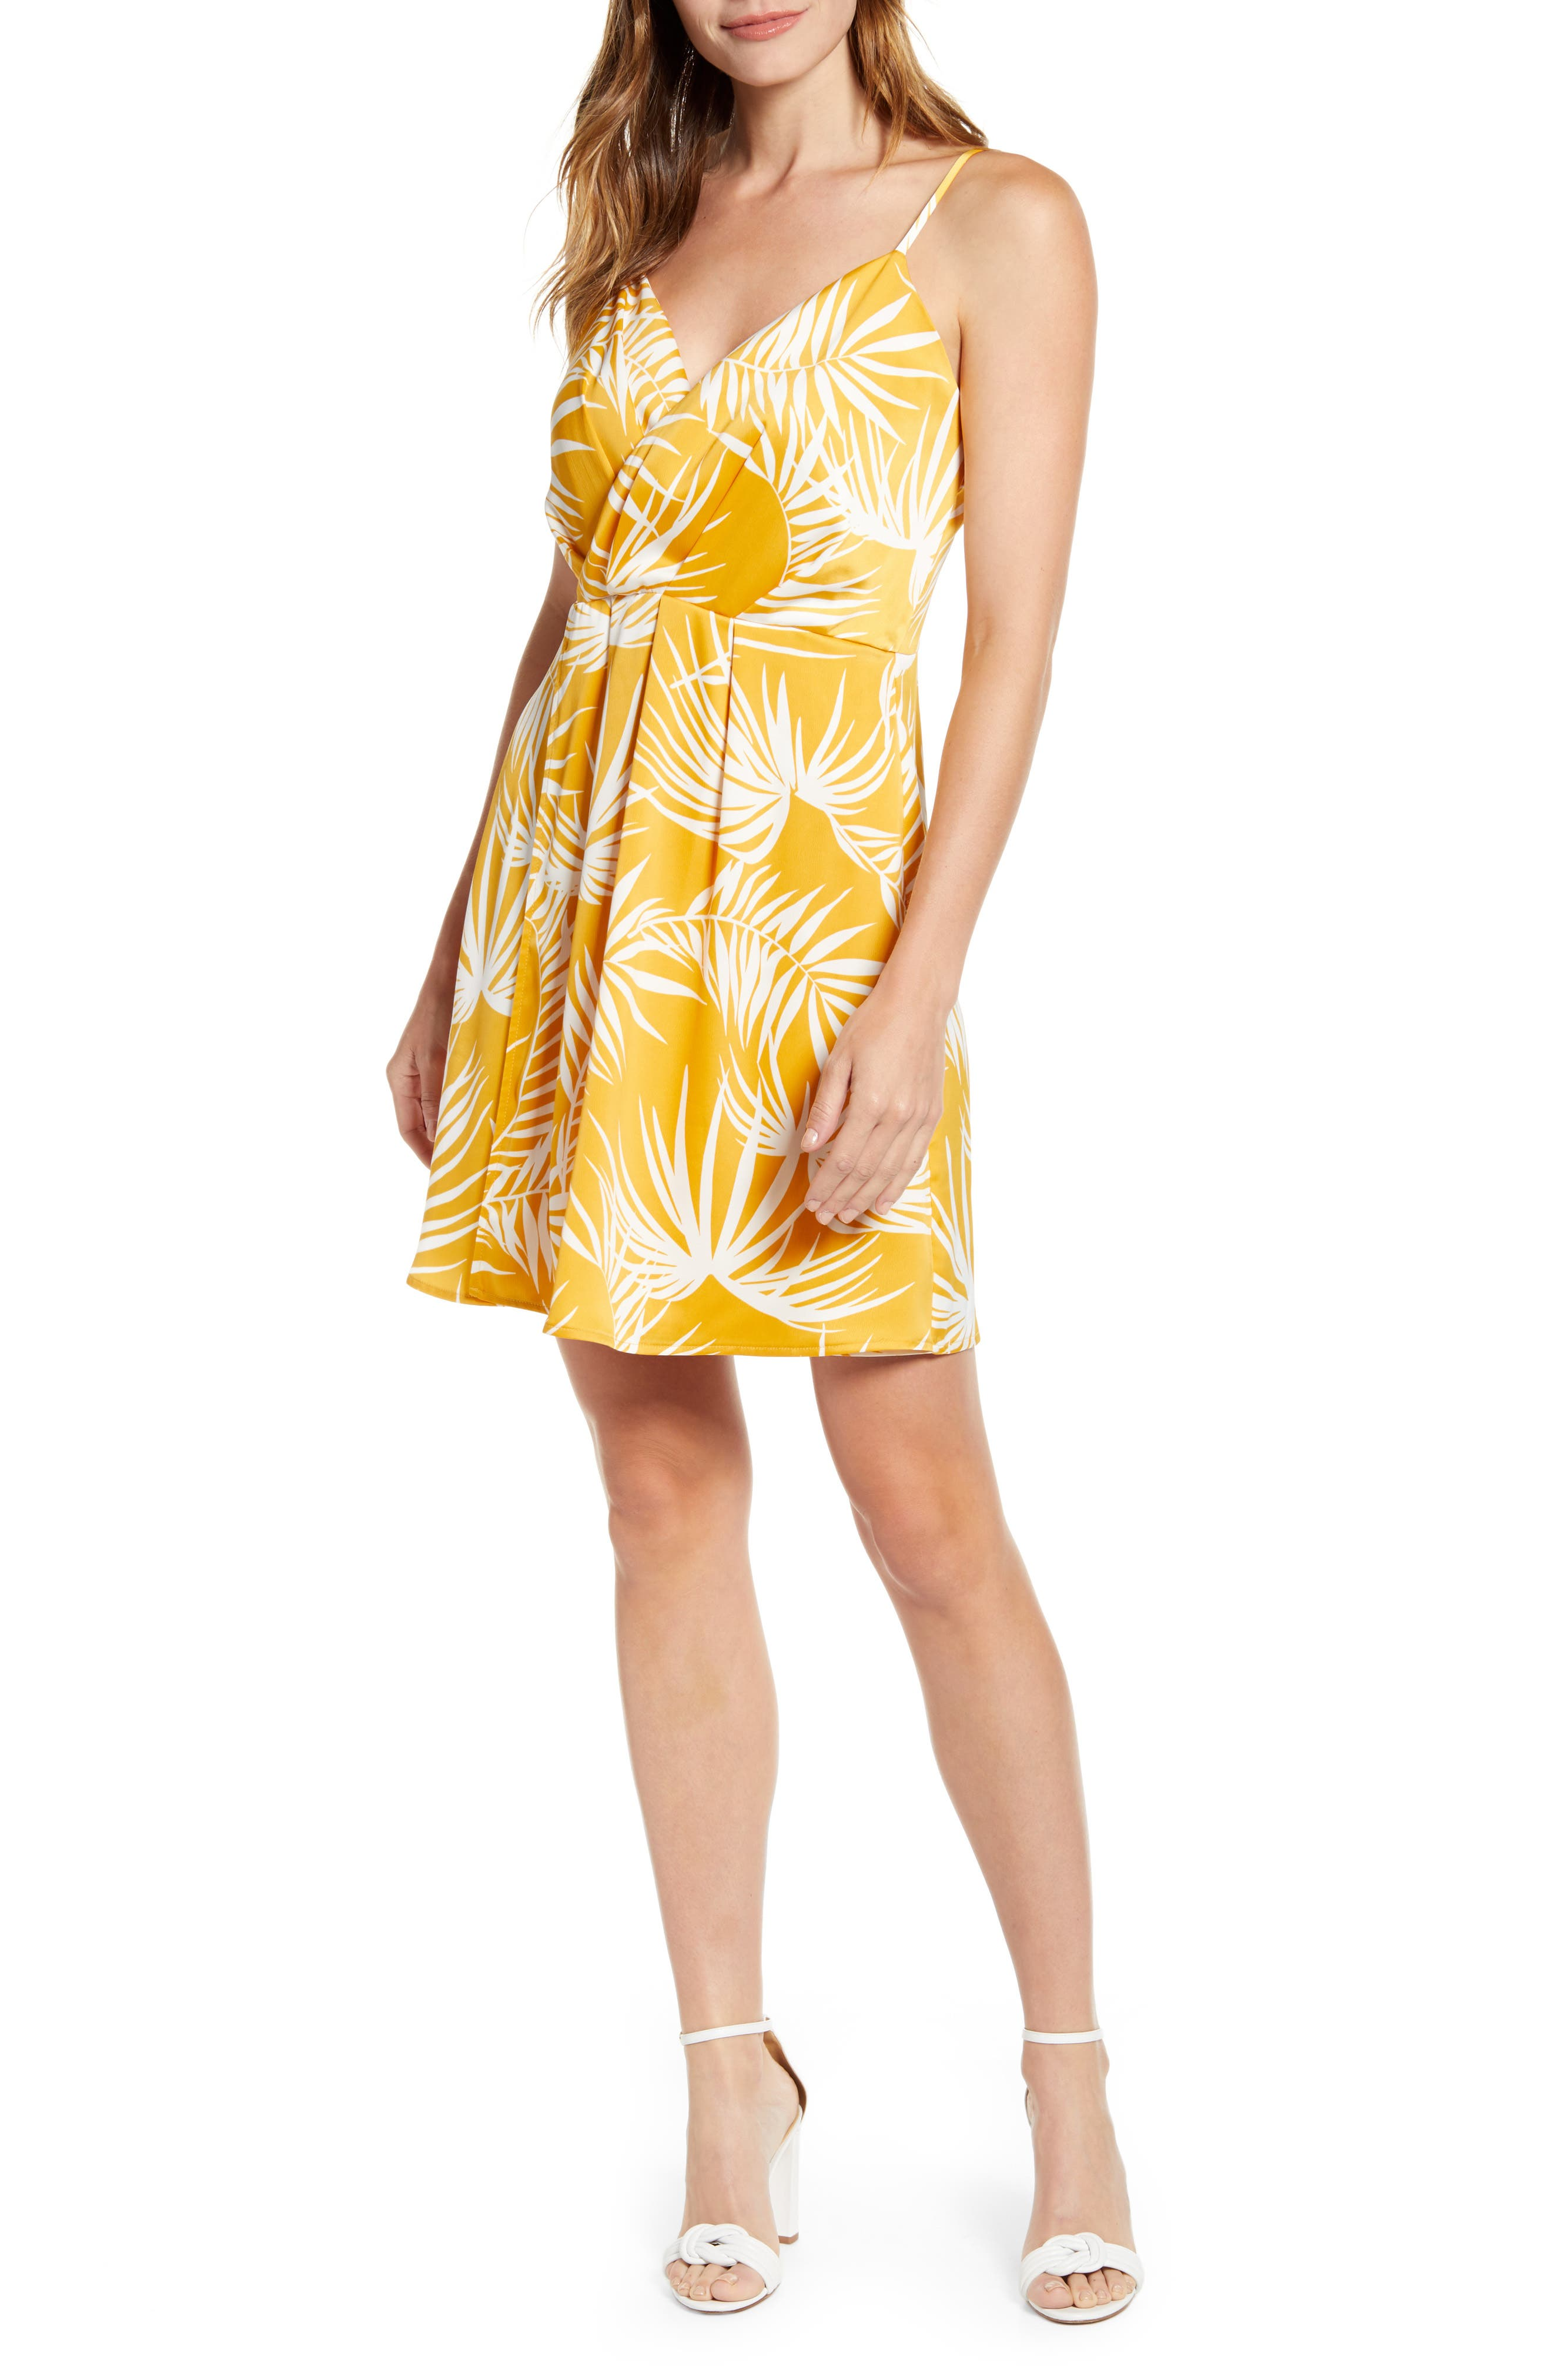 Petite Gibson X Hot Summer Nights Natalie Satin Faux Wrap Dress, Yellow (Regular & Petite) (Nordstrom Exclusive)